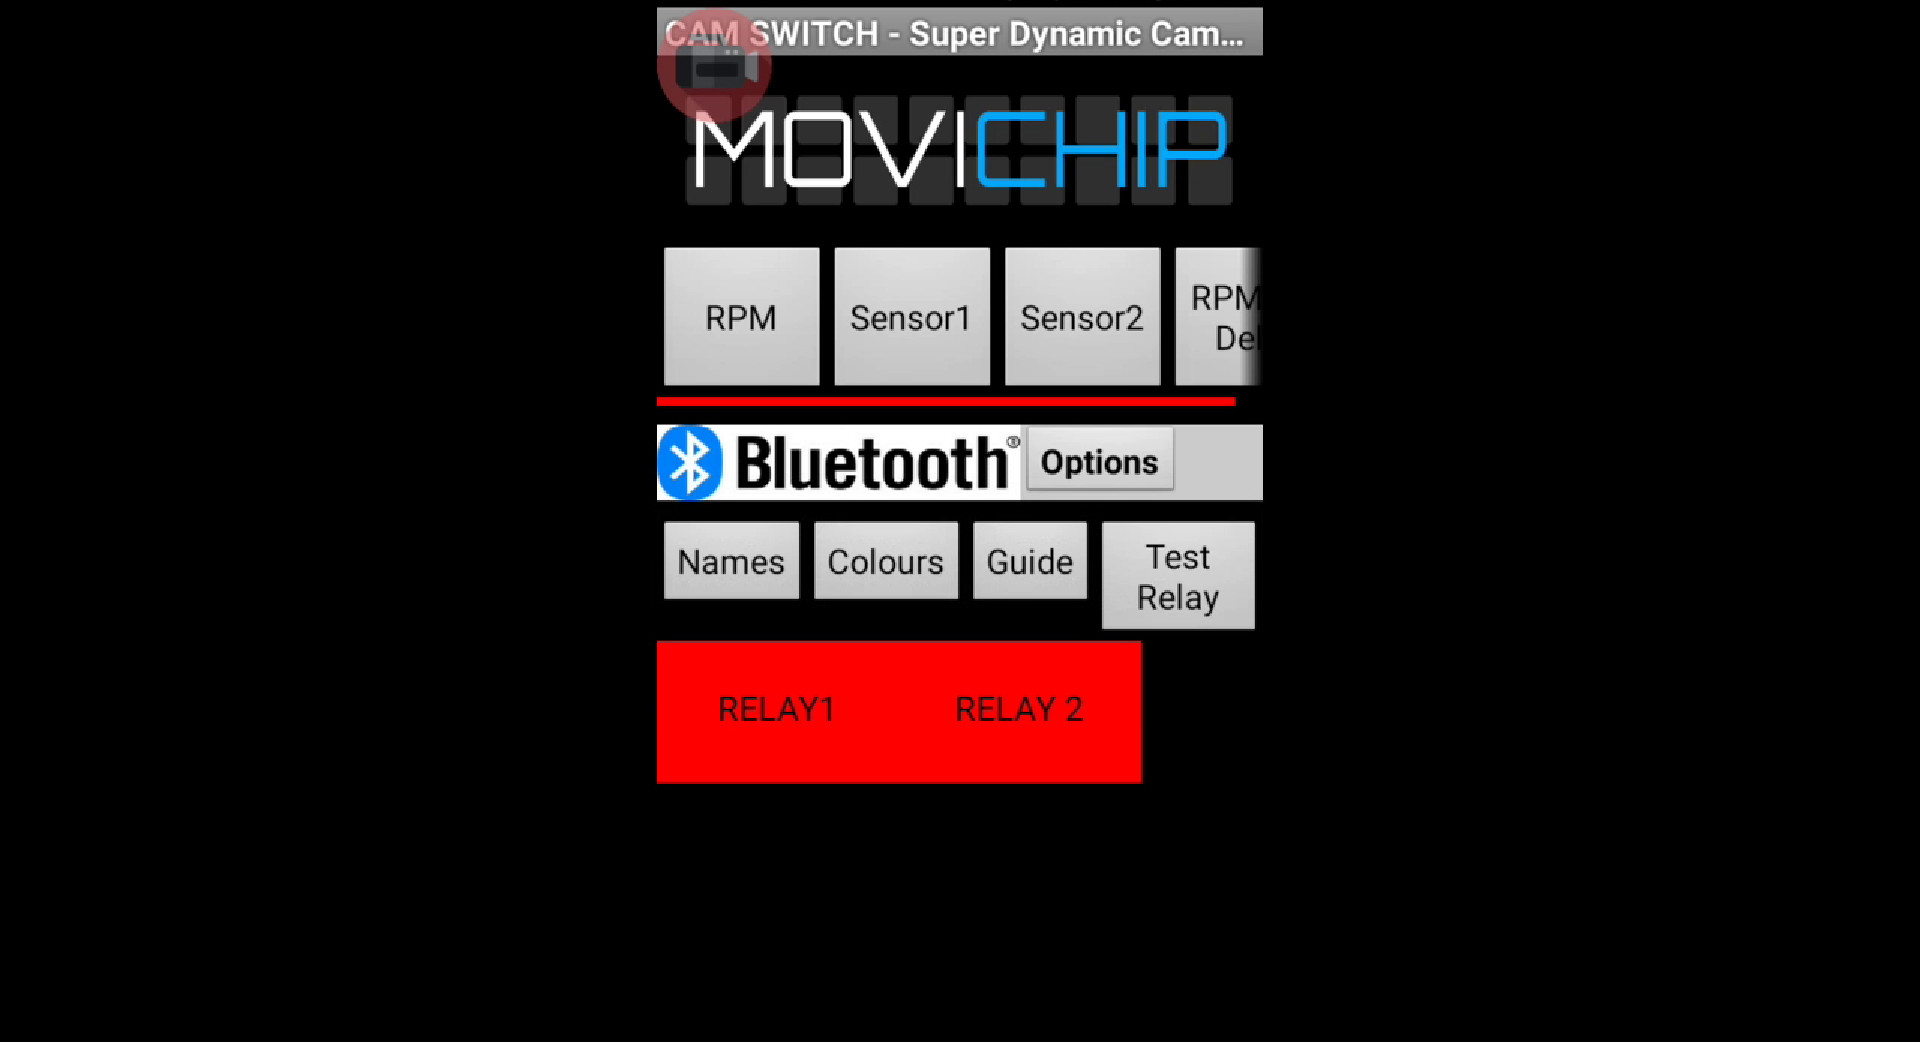 MoviChip CamSwitch - Test Relays